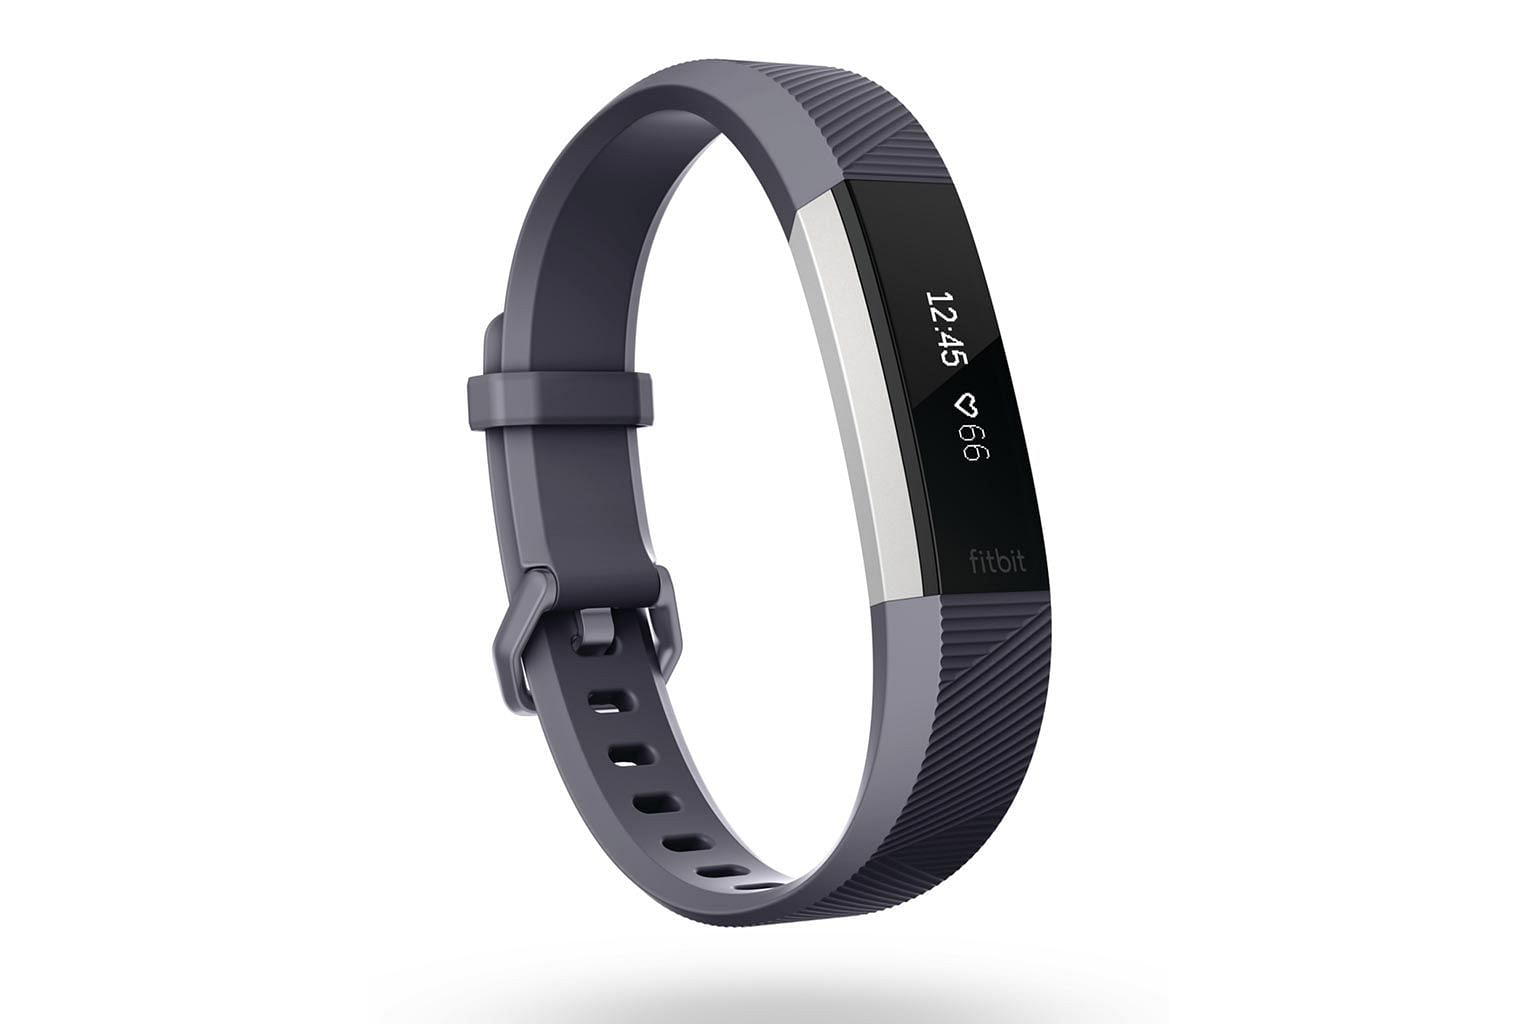 Fitbit claims that the Alta HR, which looks more like a bracelet, is the world's slimmest wrist-based continuous heart-rate tracking device.